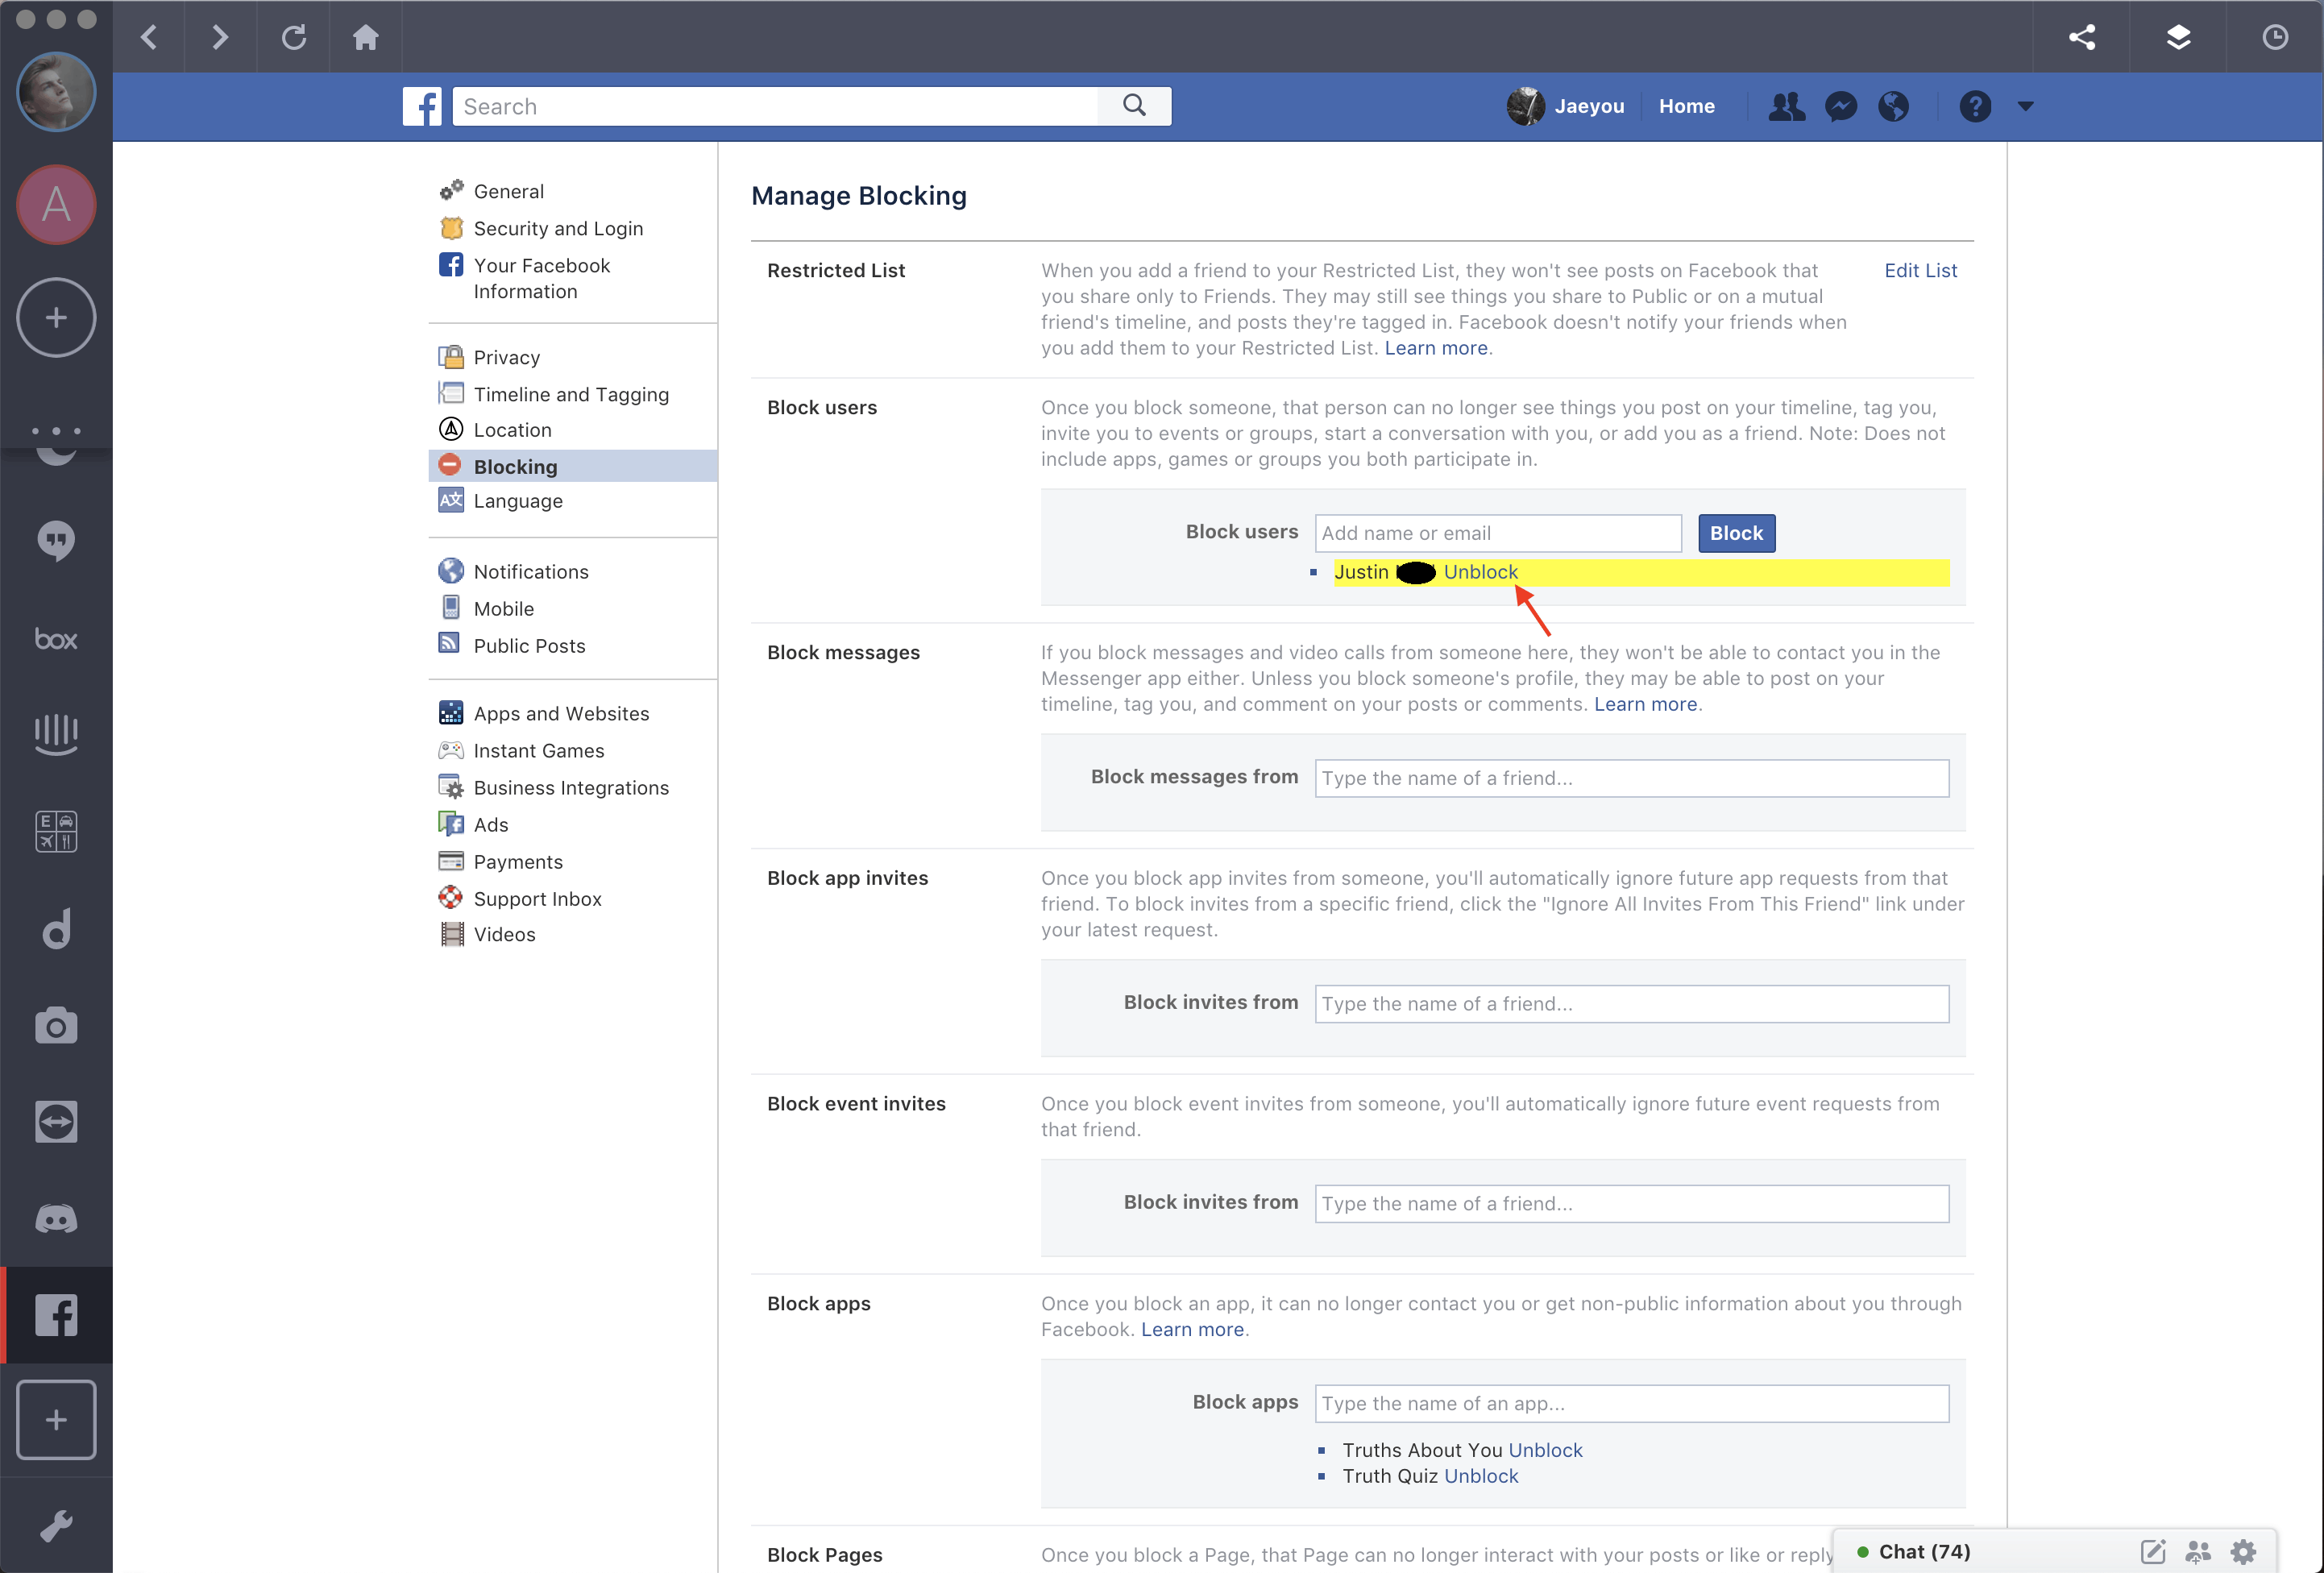 How To Block Or Unblock Someone On Facebook The Shift Blog